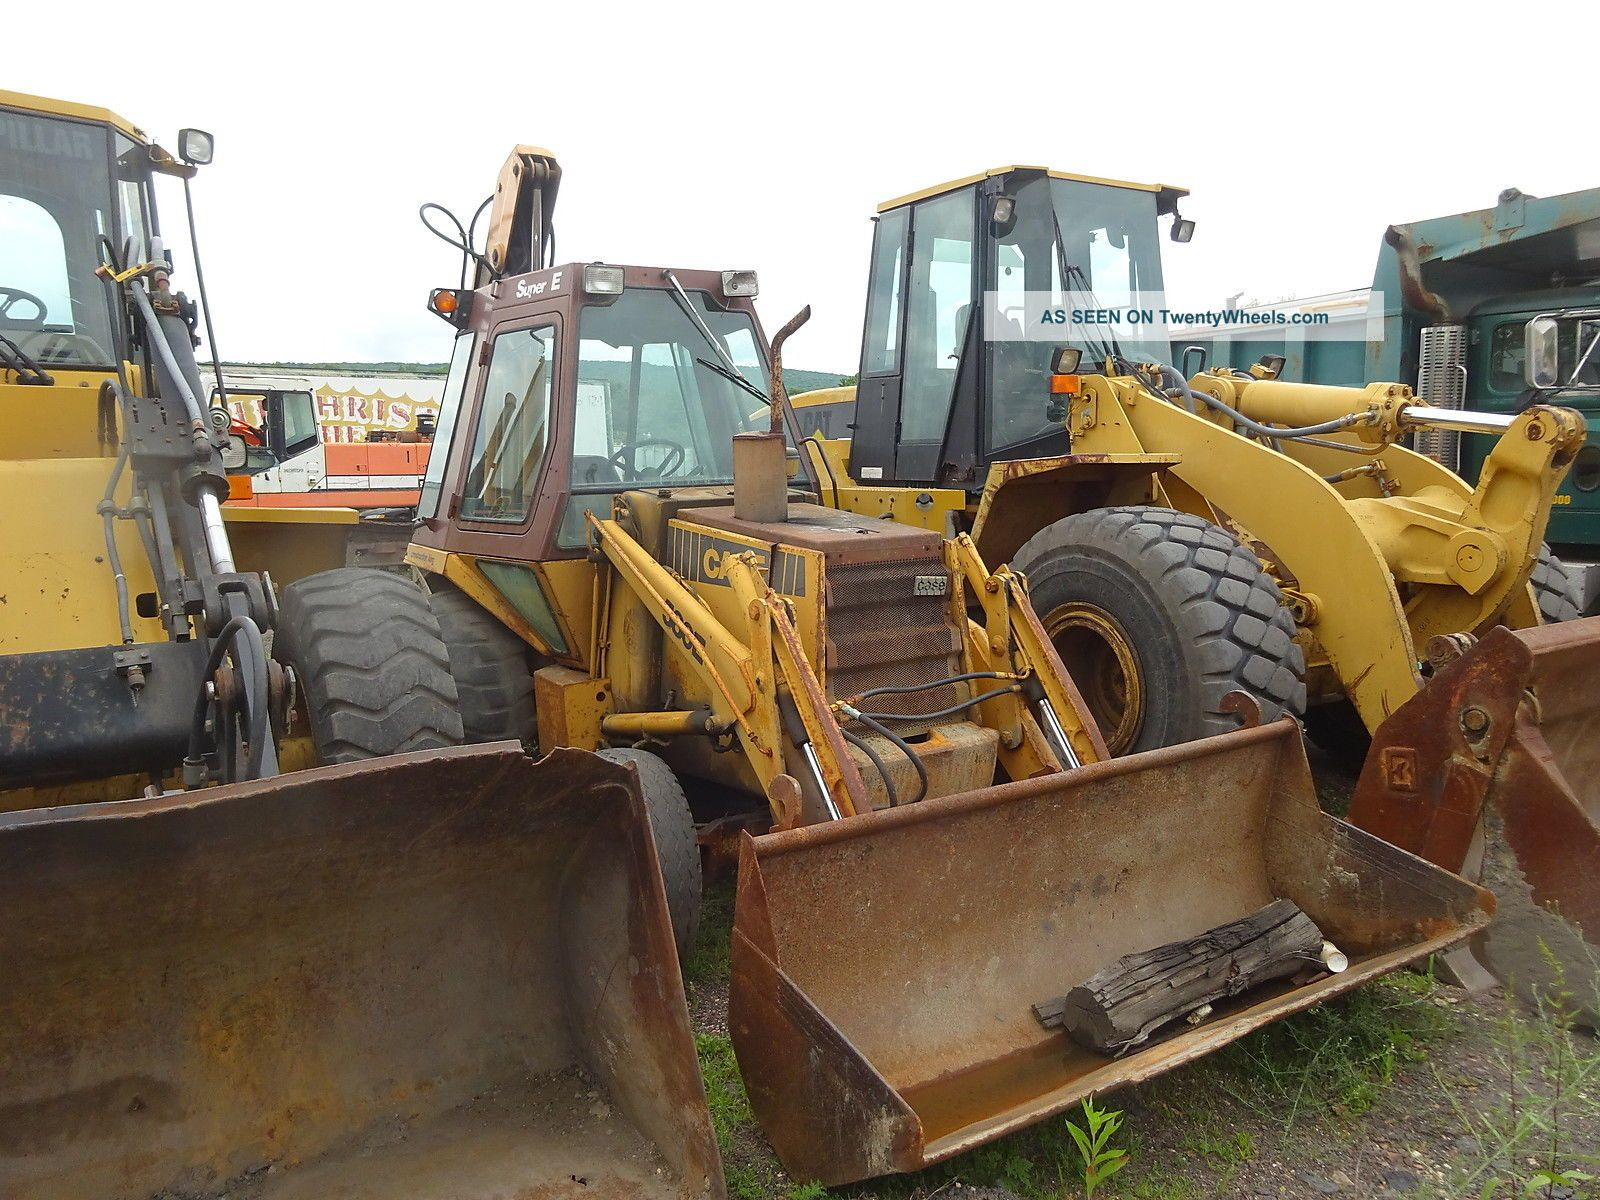 Case 580 E Loader Backhoe Extendahoe Cummins 3.  9 Dsl 580e 580se Backhoe Loaders photo